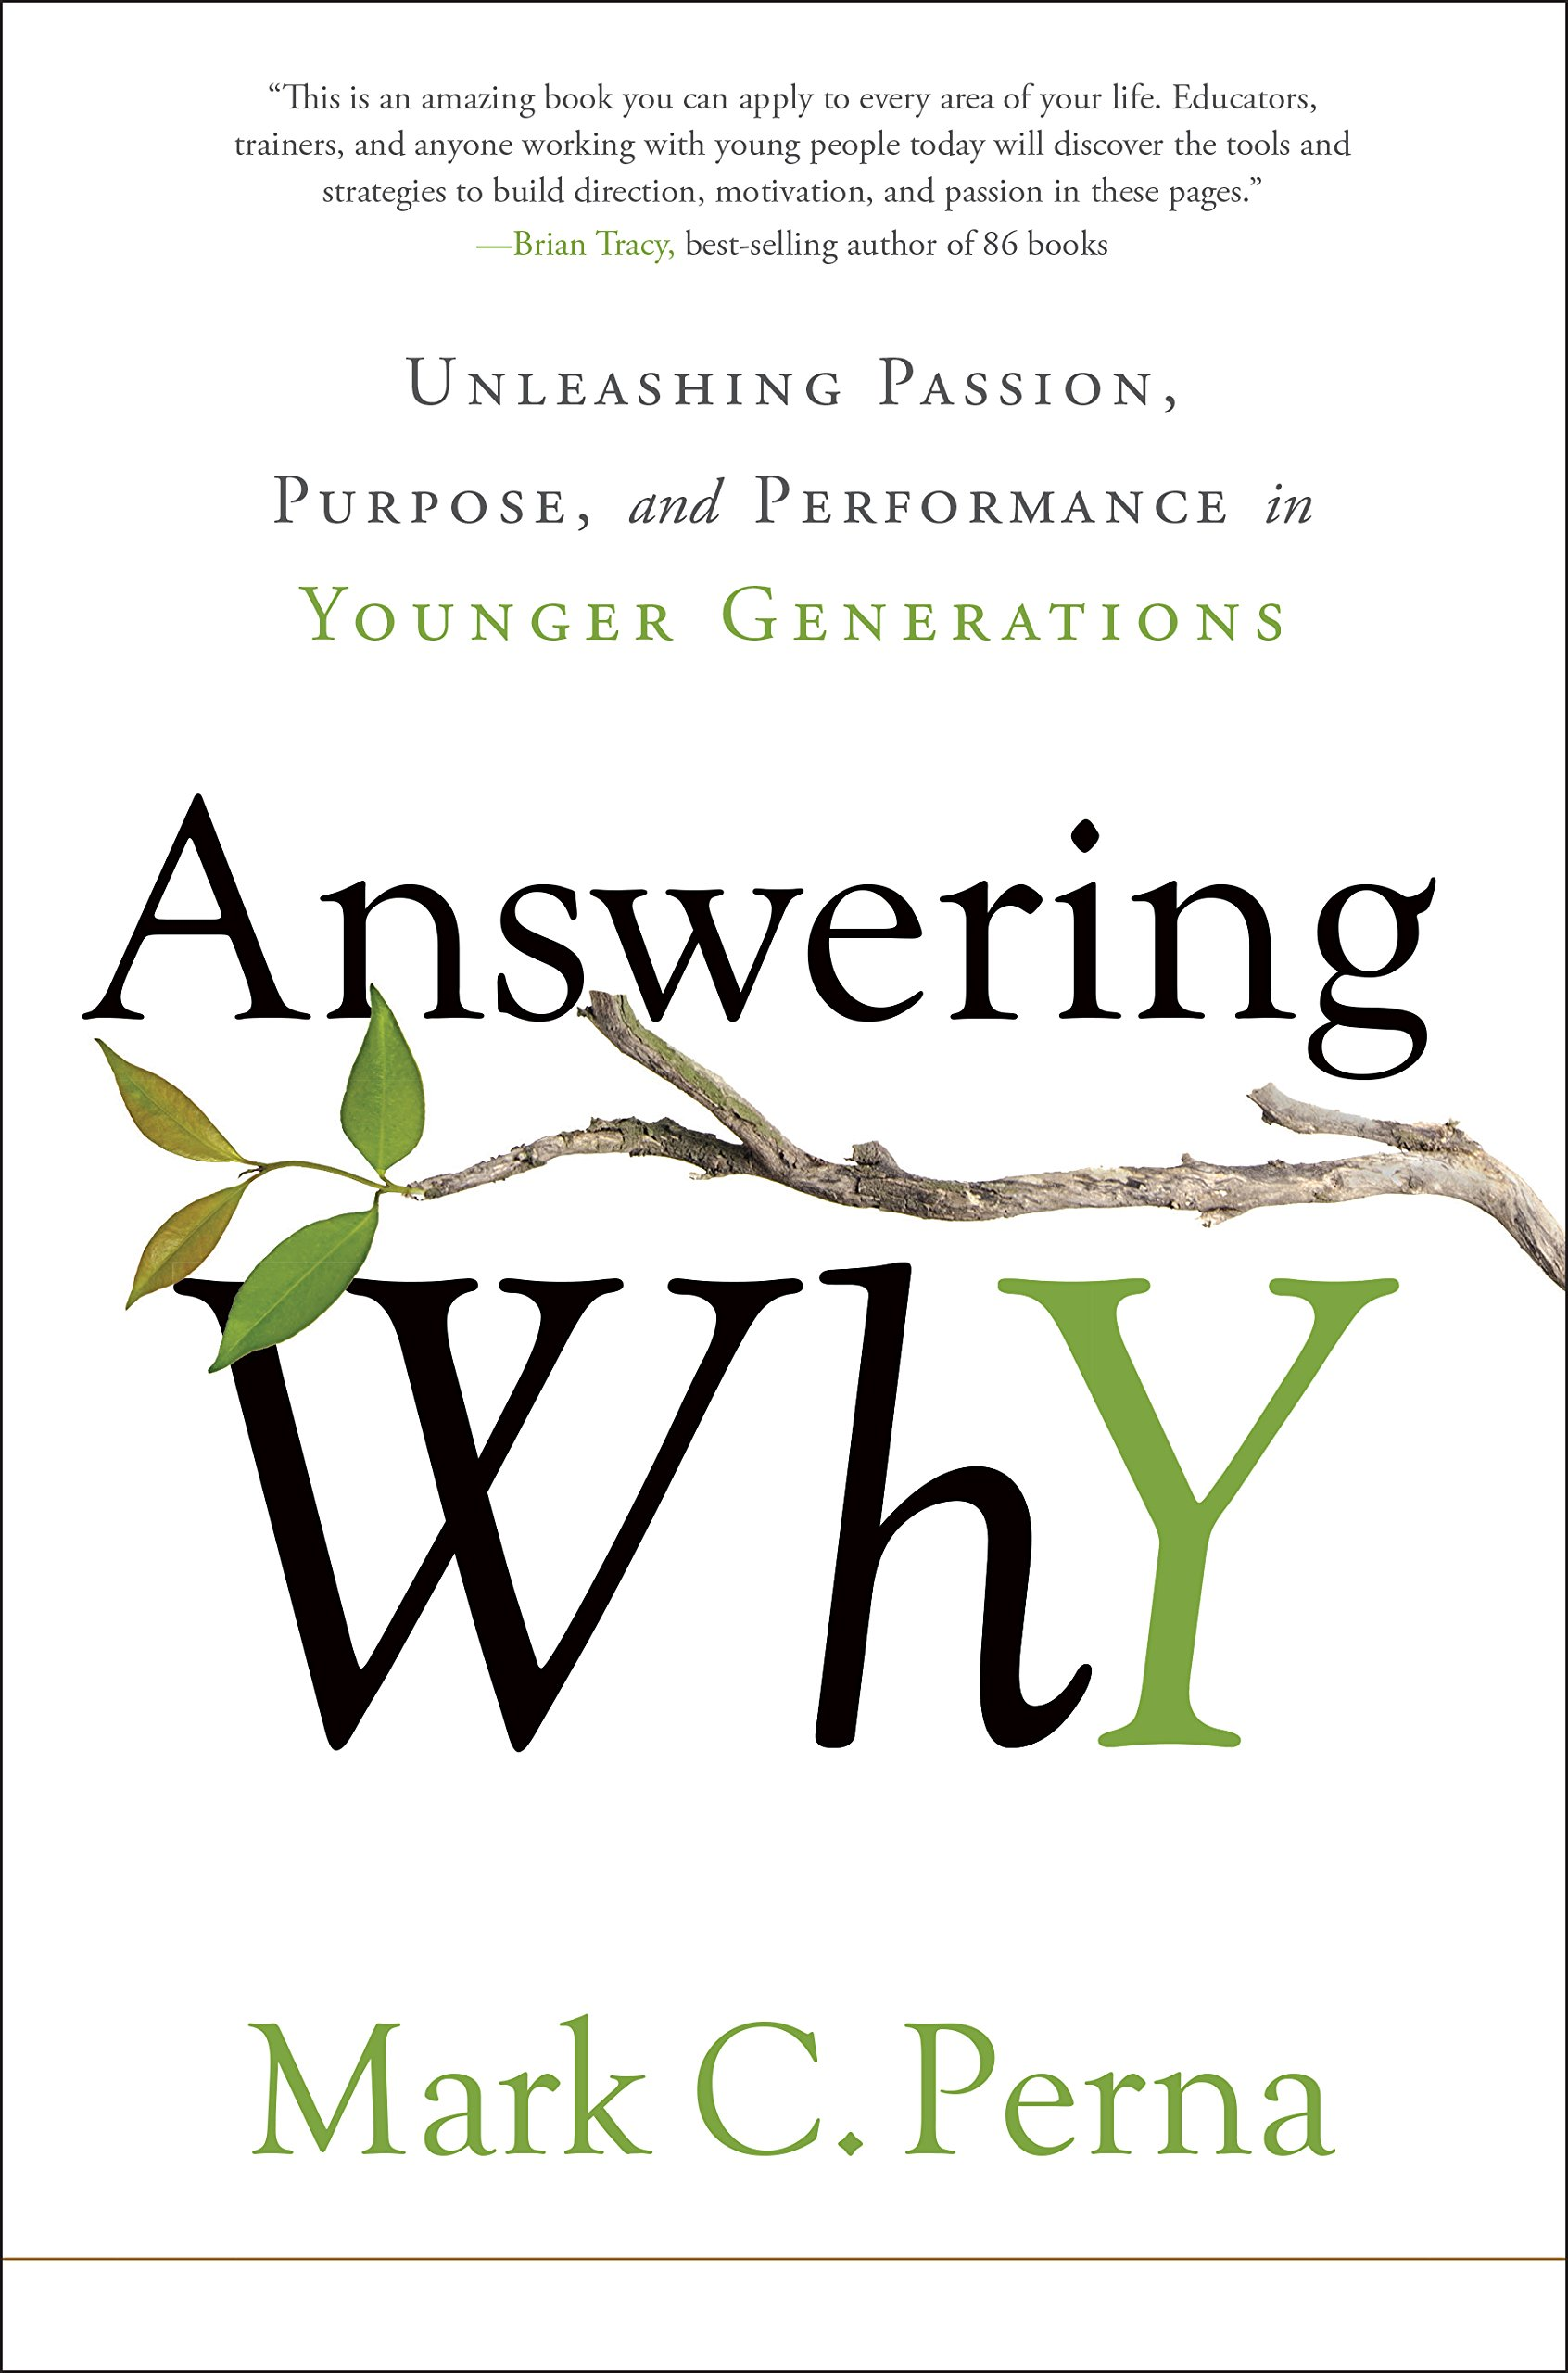 Answering Why -  Unleashing Passion, Purpose, and Performance in Younger Generations